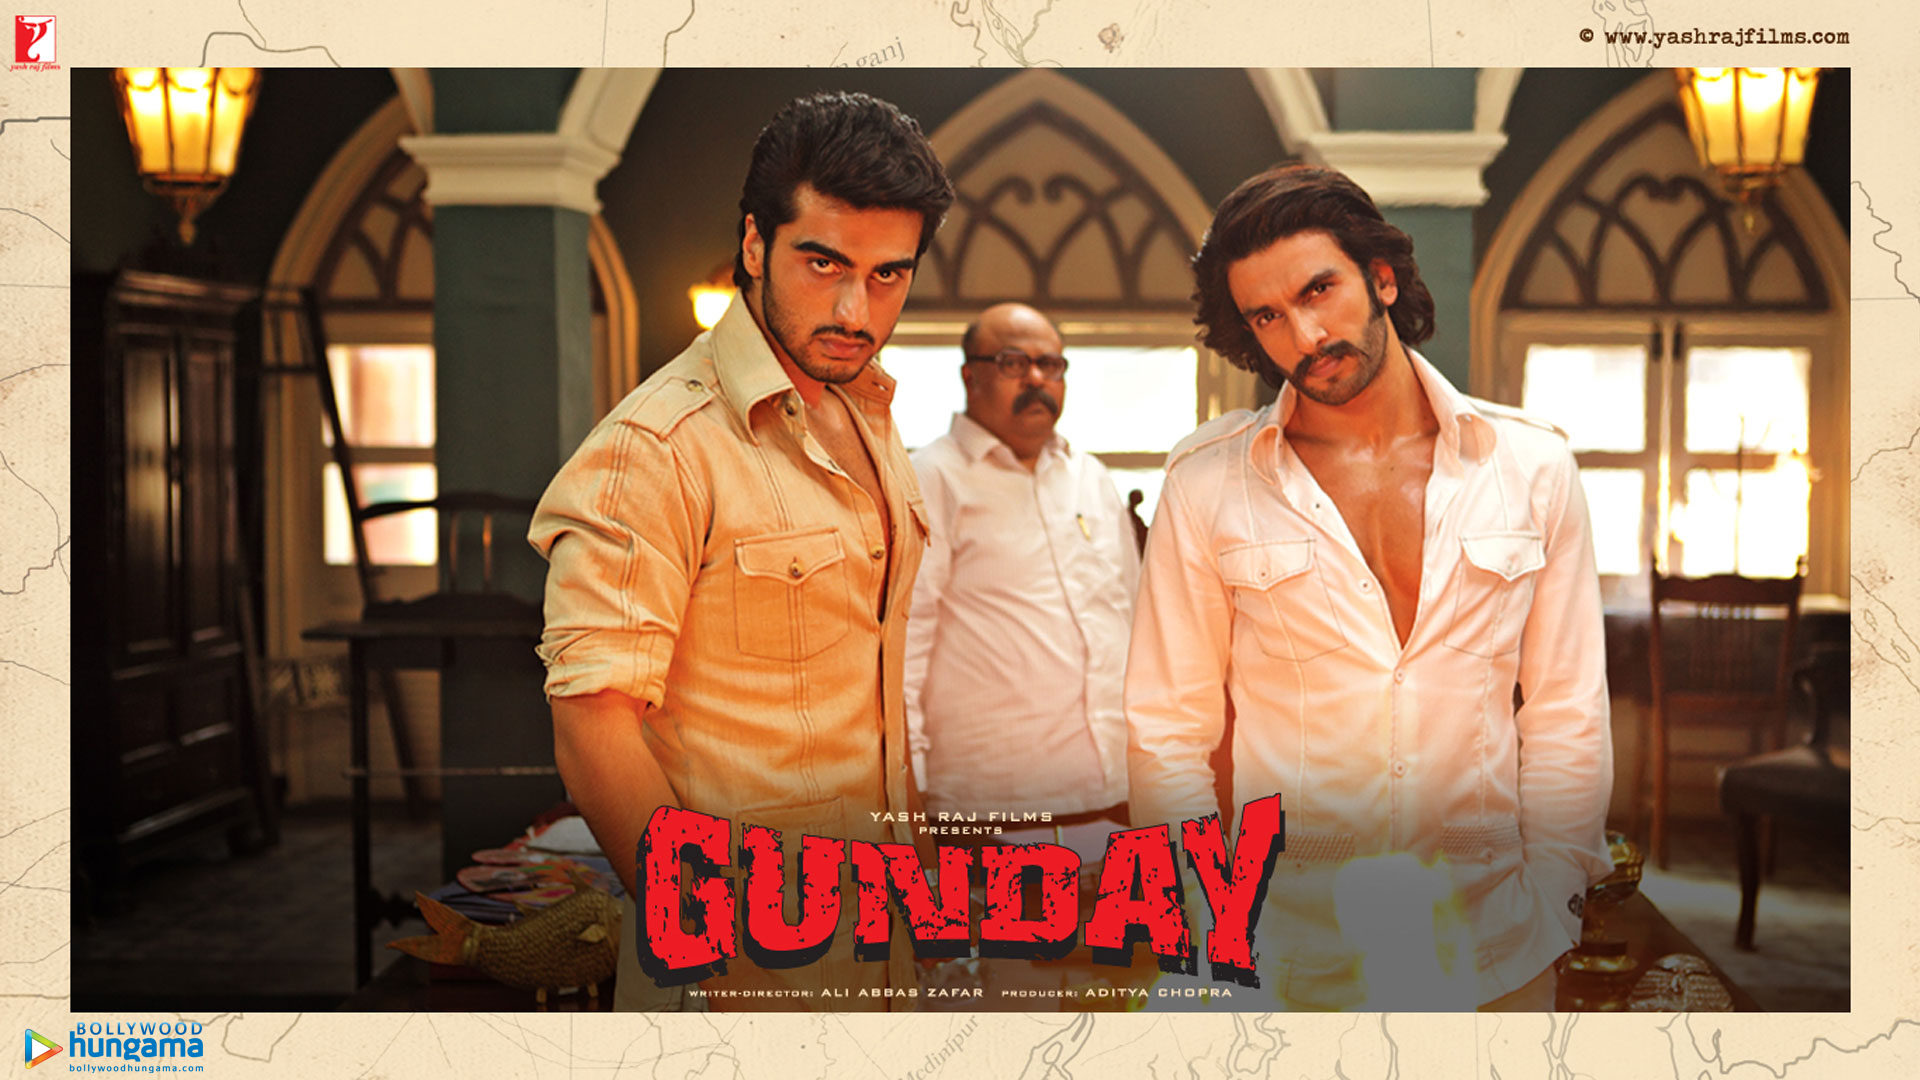 Gunday Movie Dialogues Poster - Ranveer Singh And Arjun Kapoor